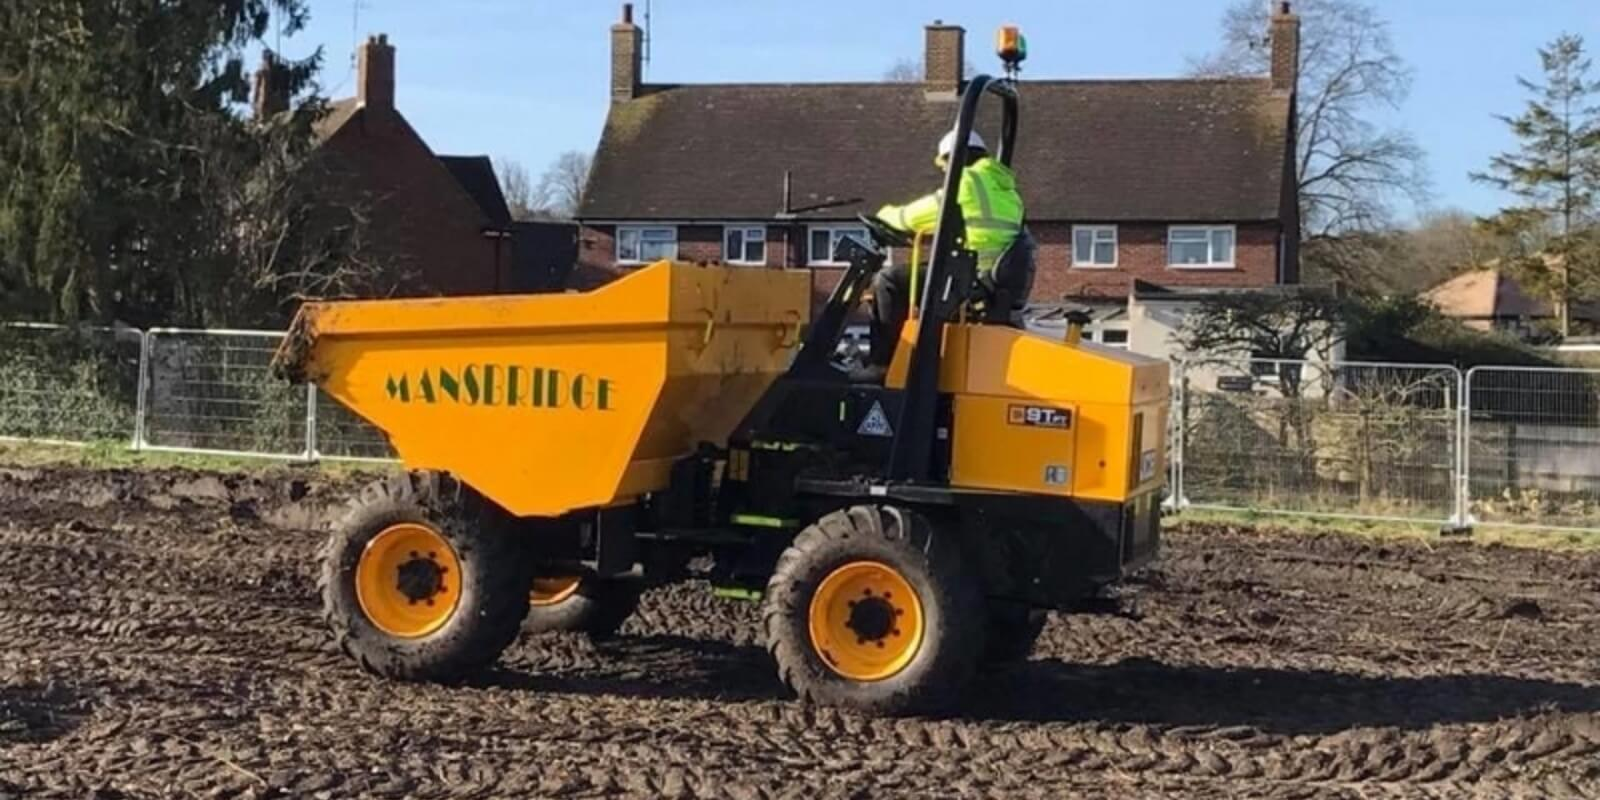 Groundwork and Building Contractor Oxford